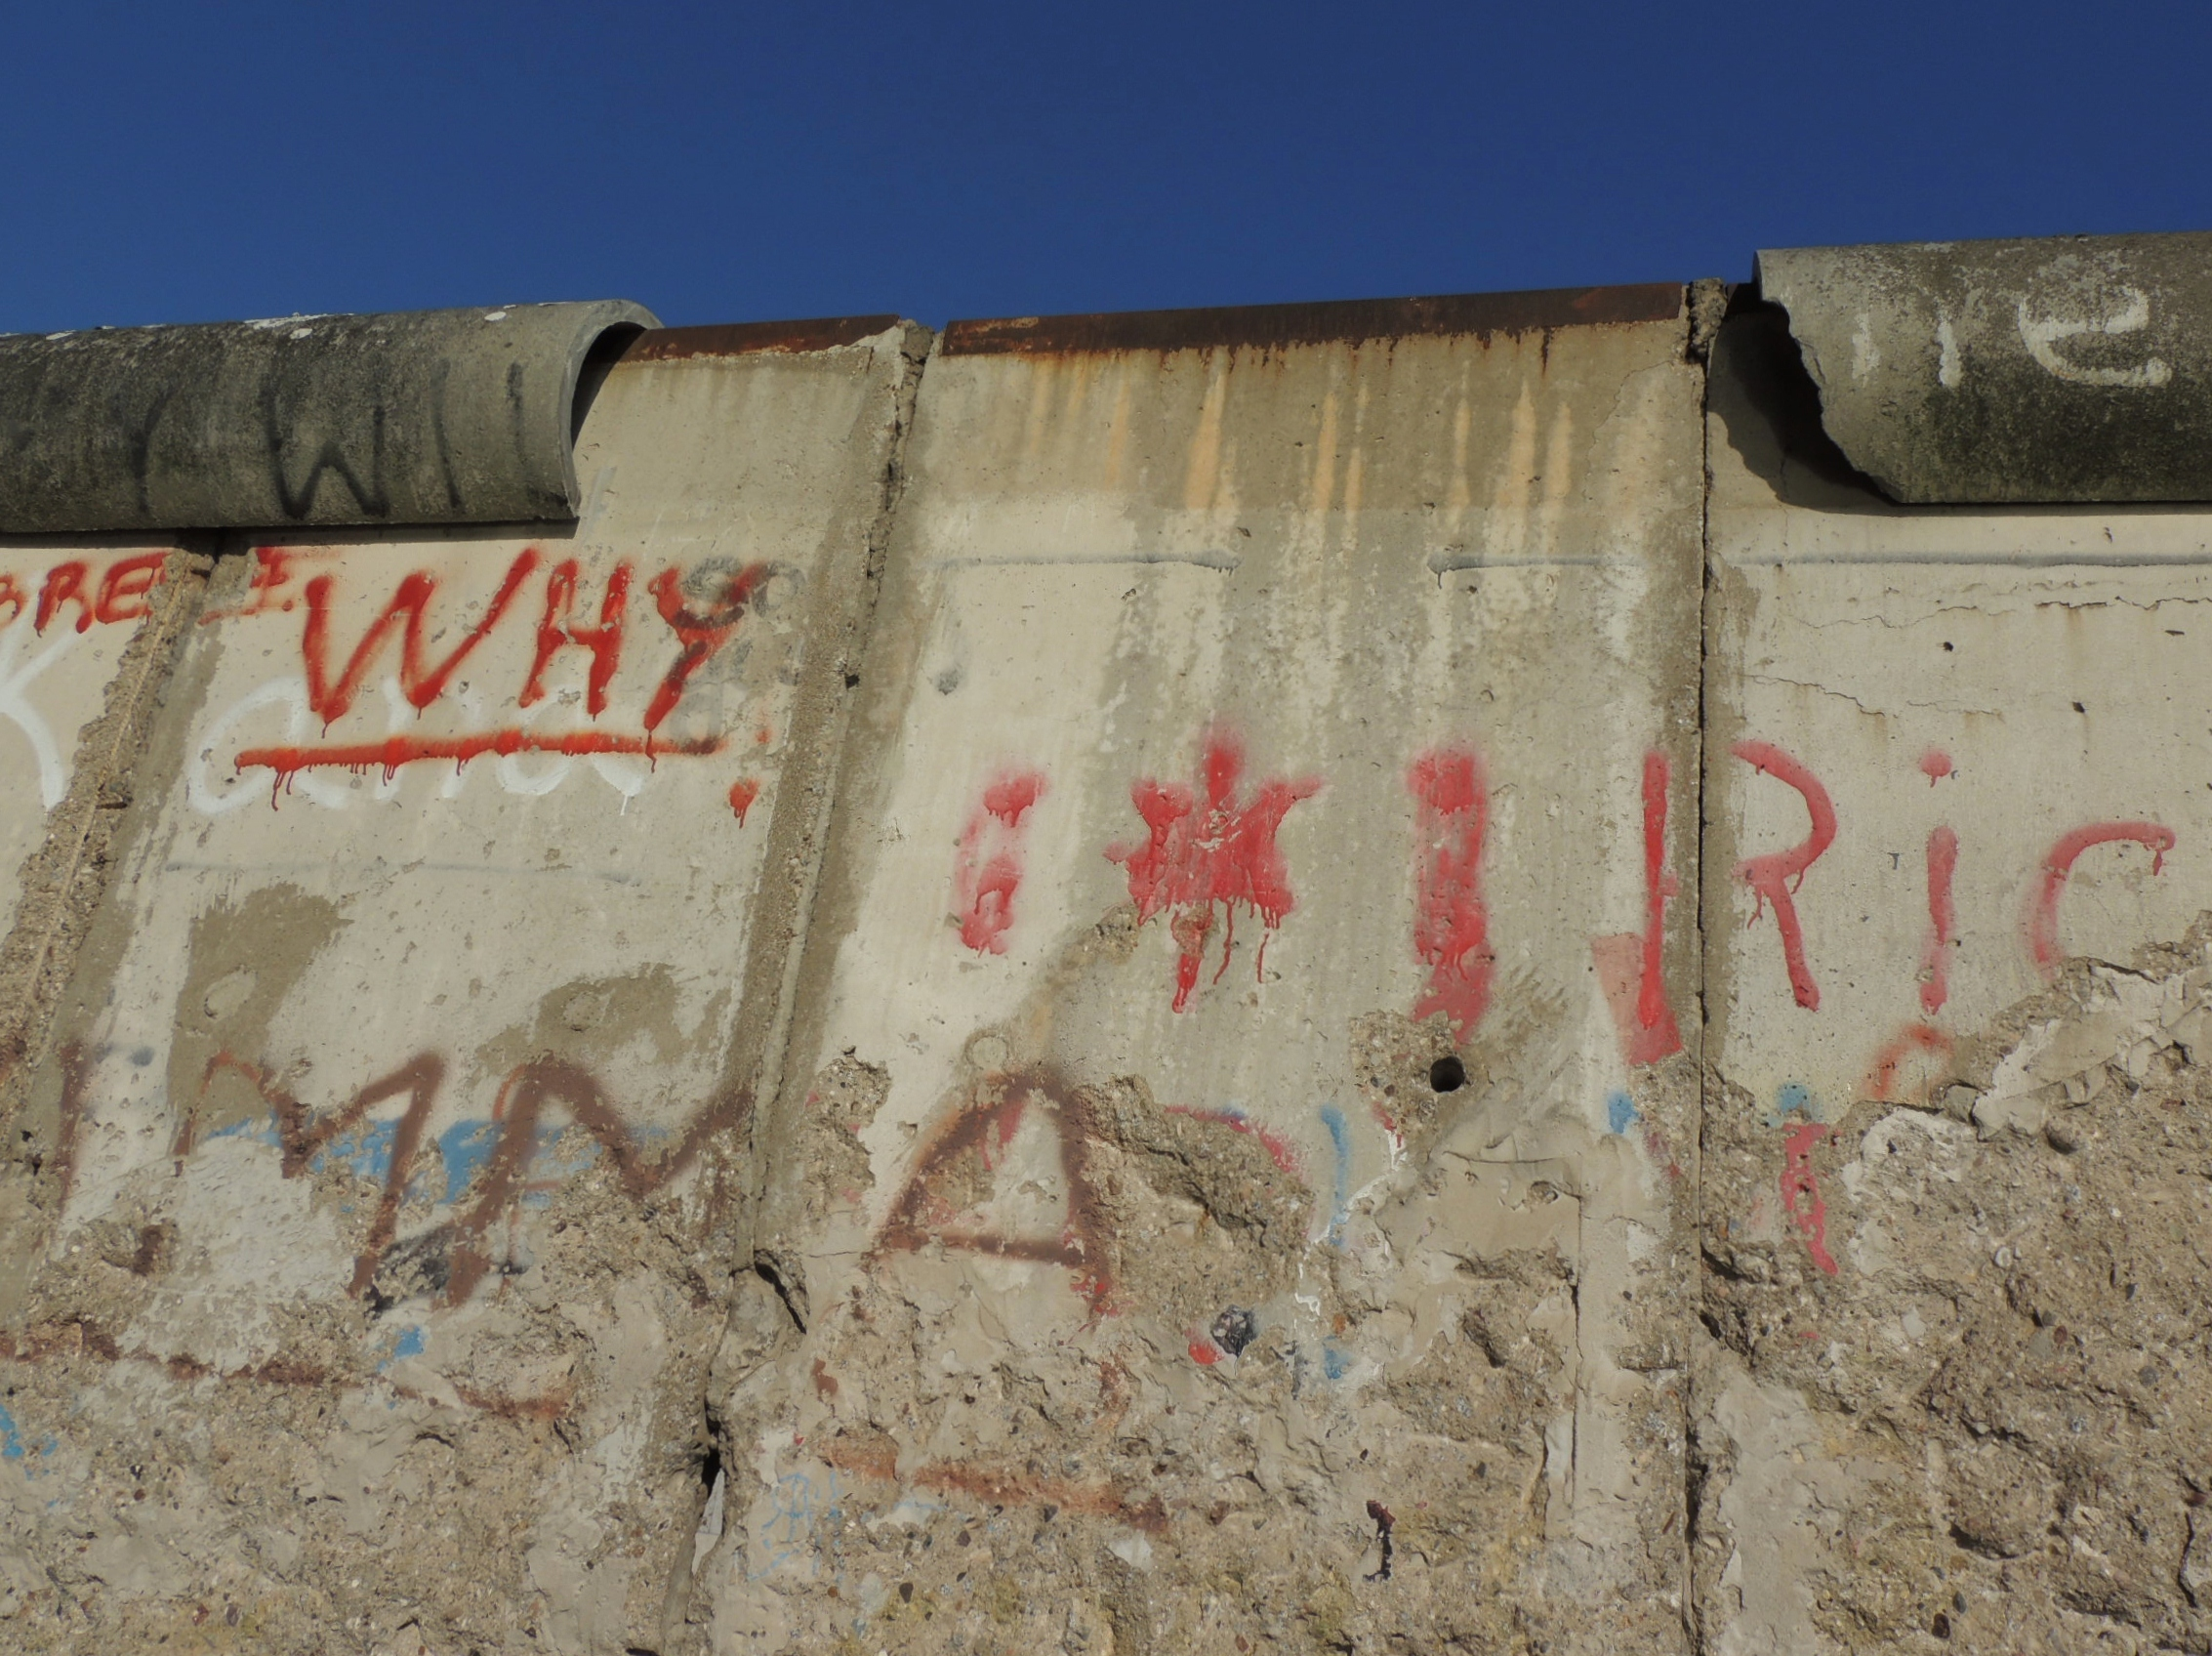 The Crumbling Berlin Wall By Day: Photo Essay | The Travelling ...